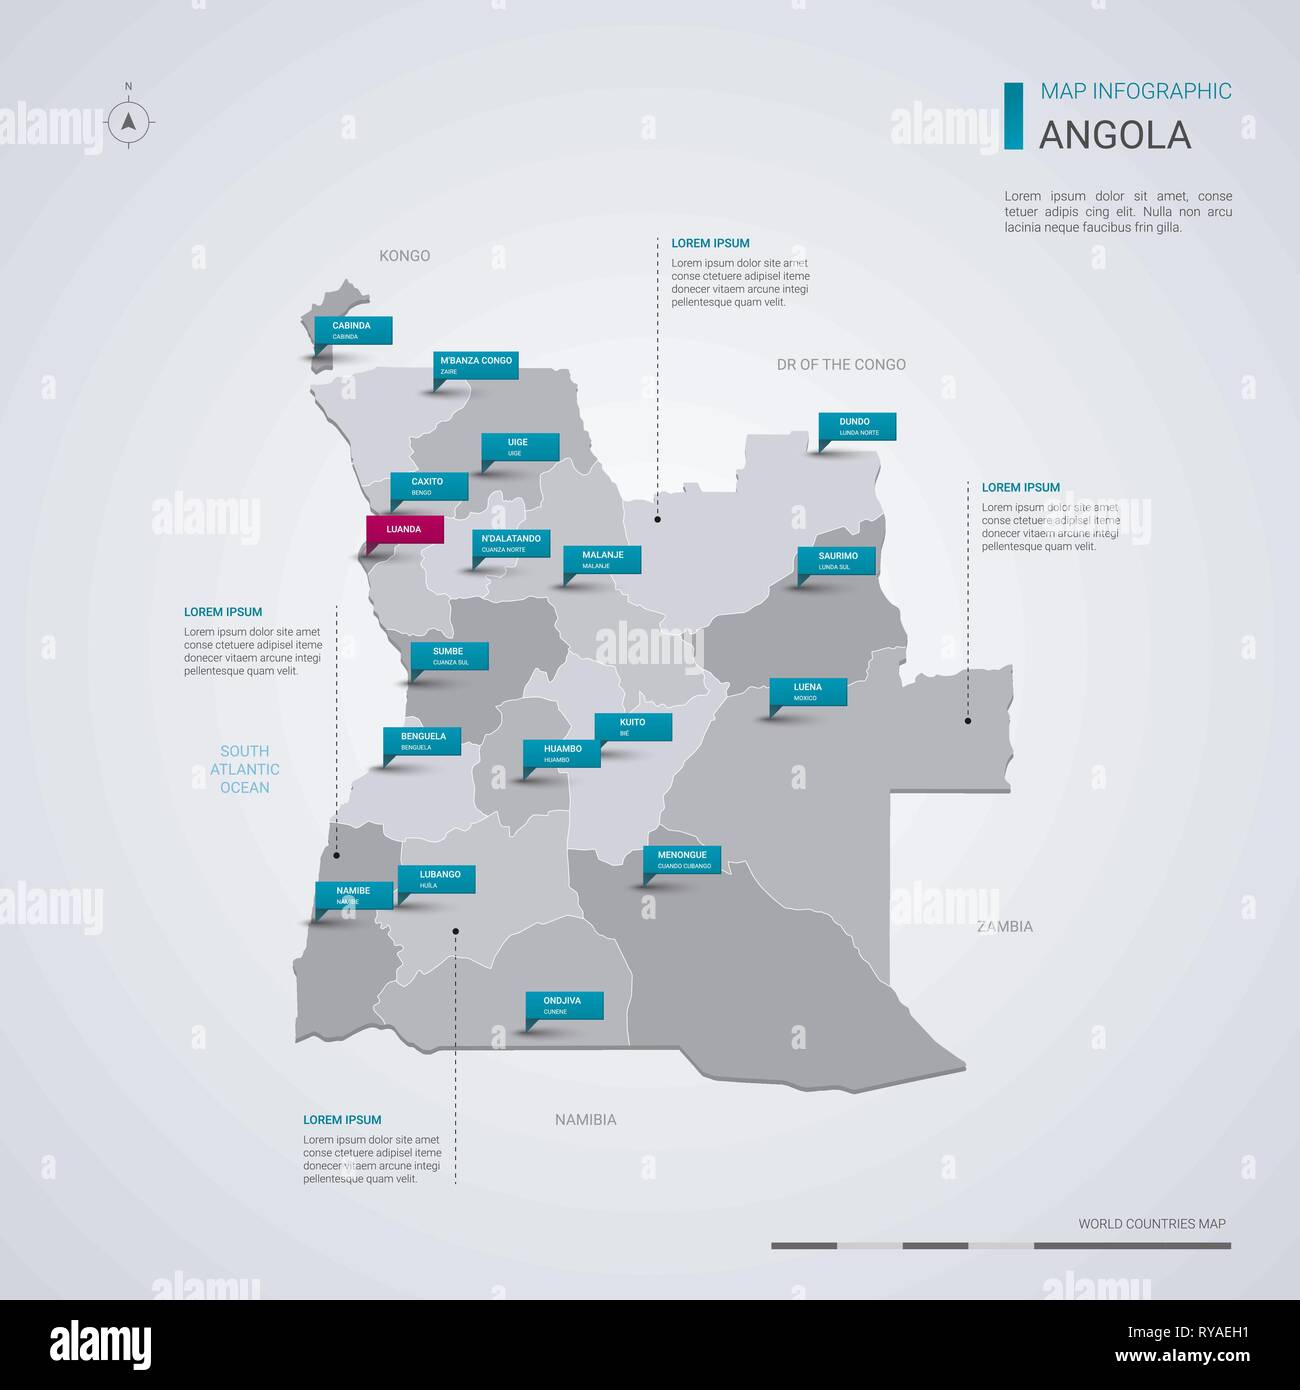 Angola vector map with infographic elements, pointer marks. Editable template with regions, cities and capital Luanda. - Stock Vector